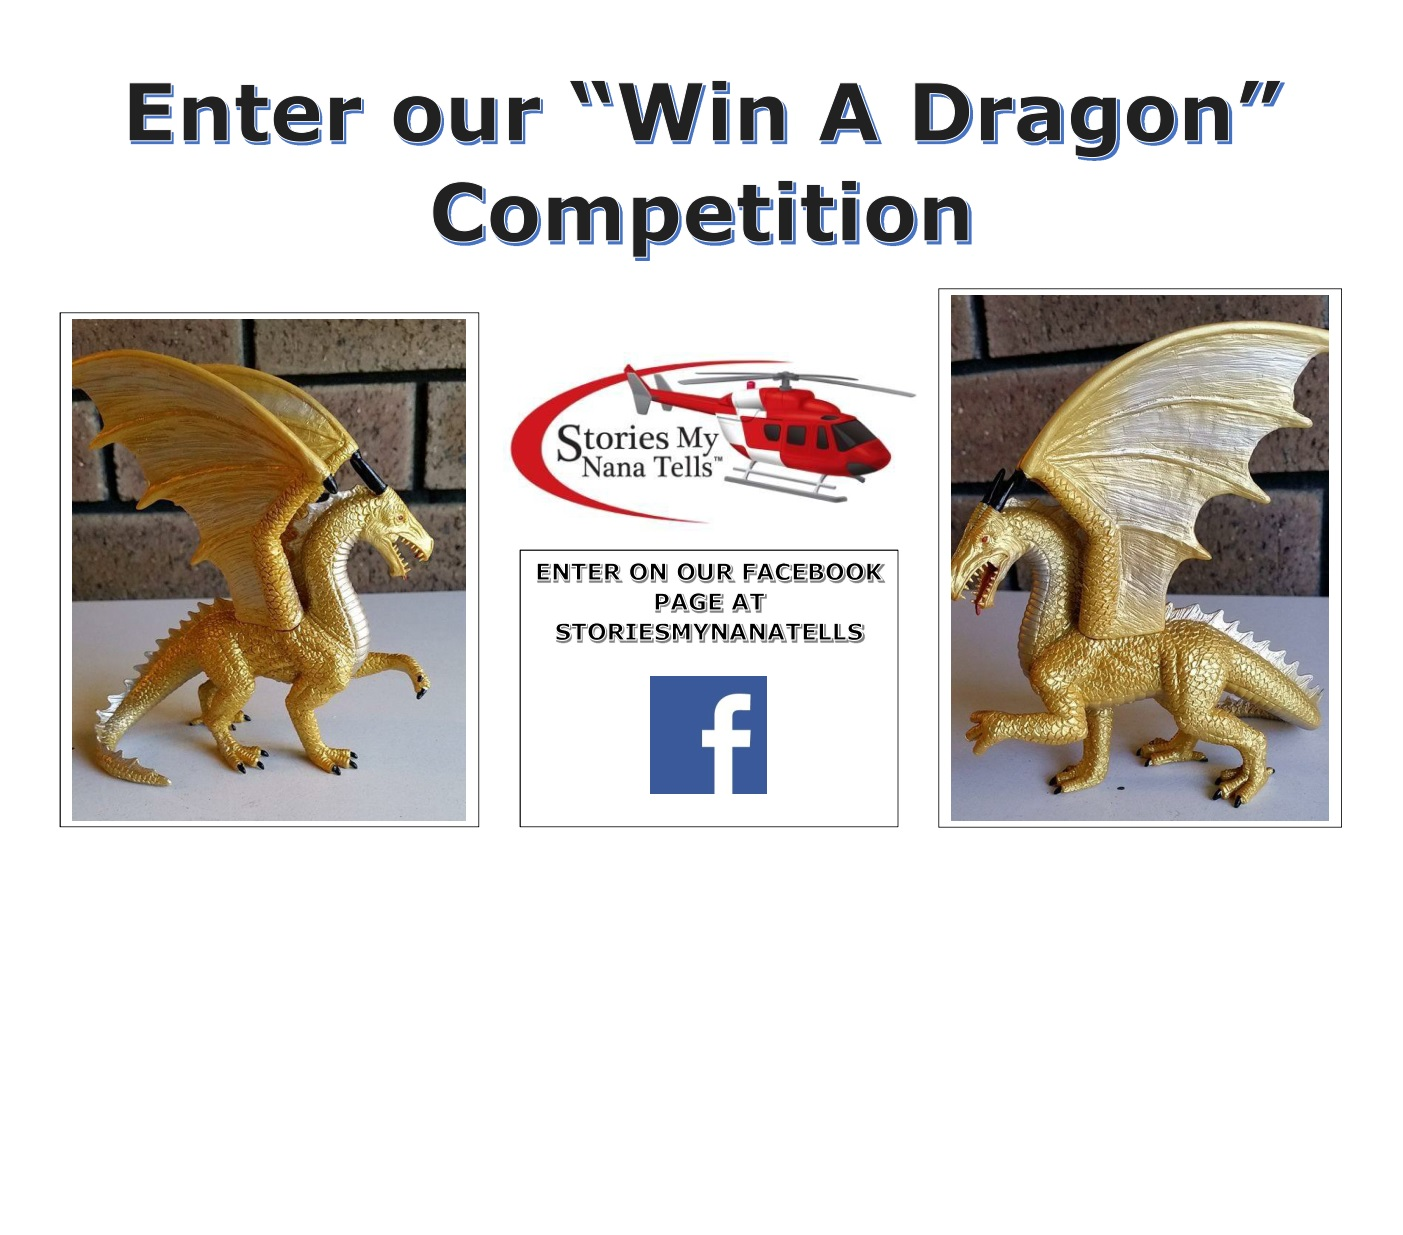 Be a winner of our Golden Dragon competition